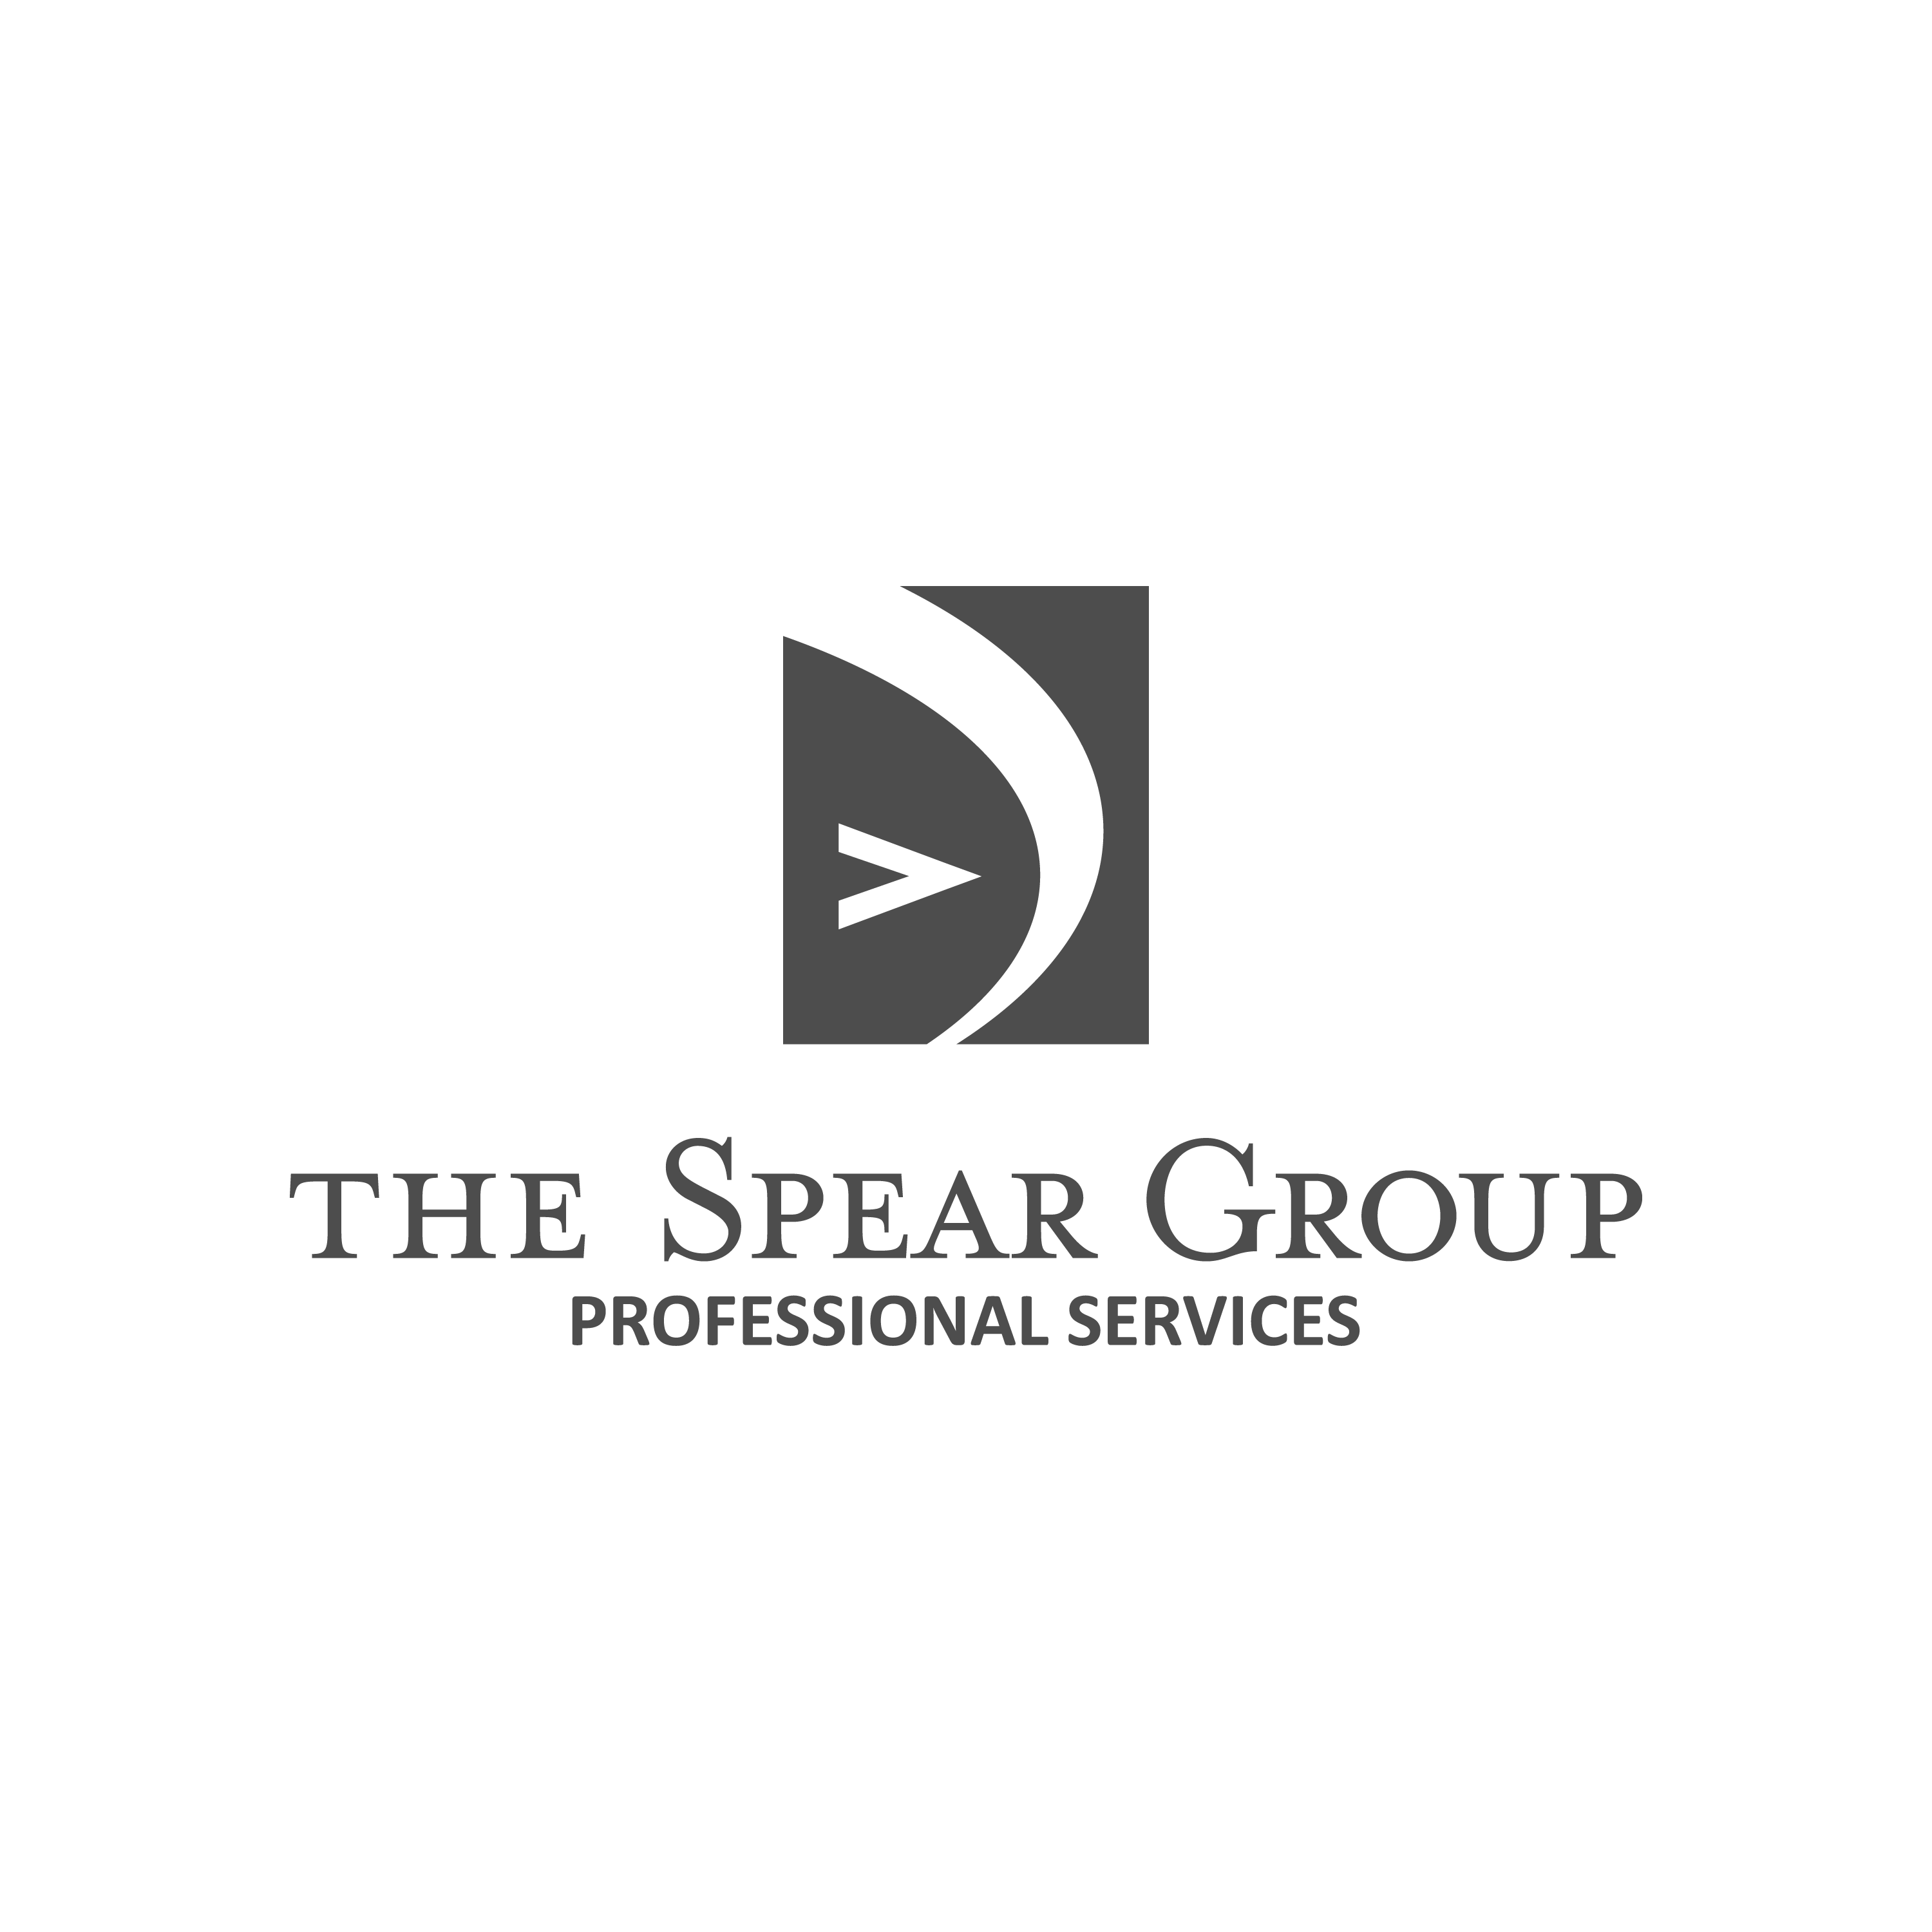 Spear Group - Logo - Sparus Holdings@3x